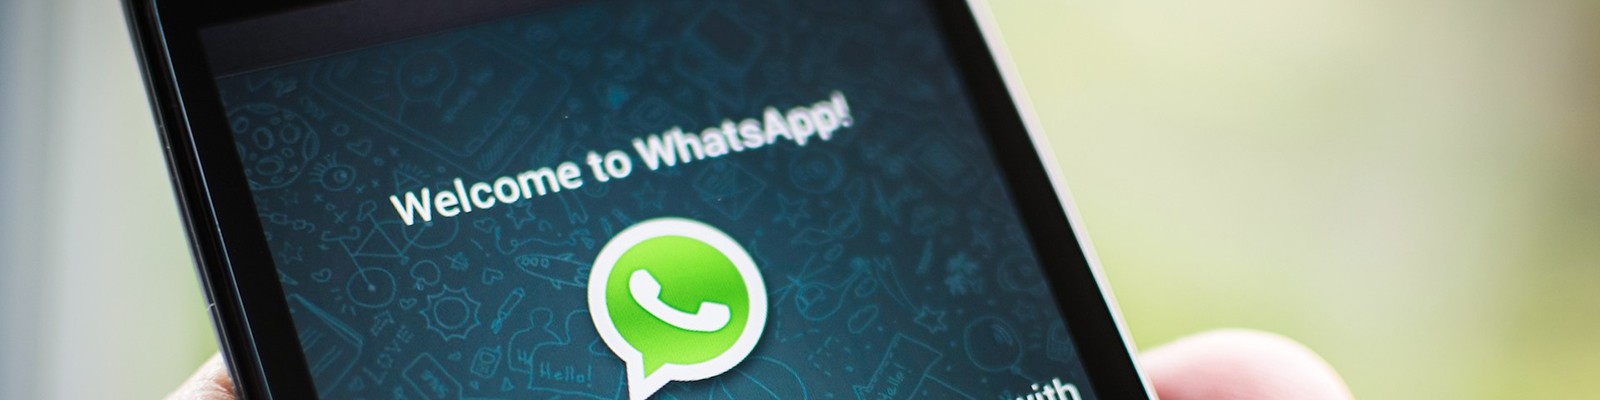 whatsapp app development cost